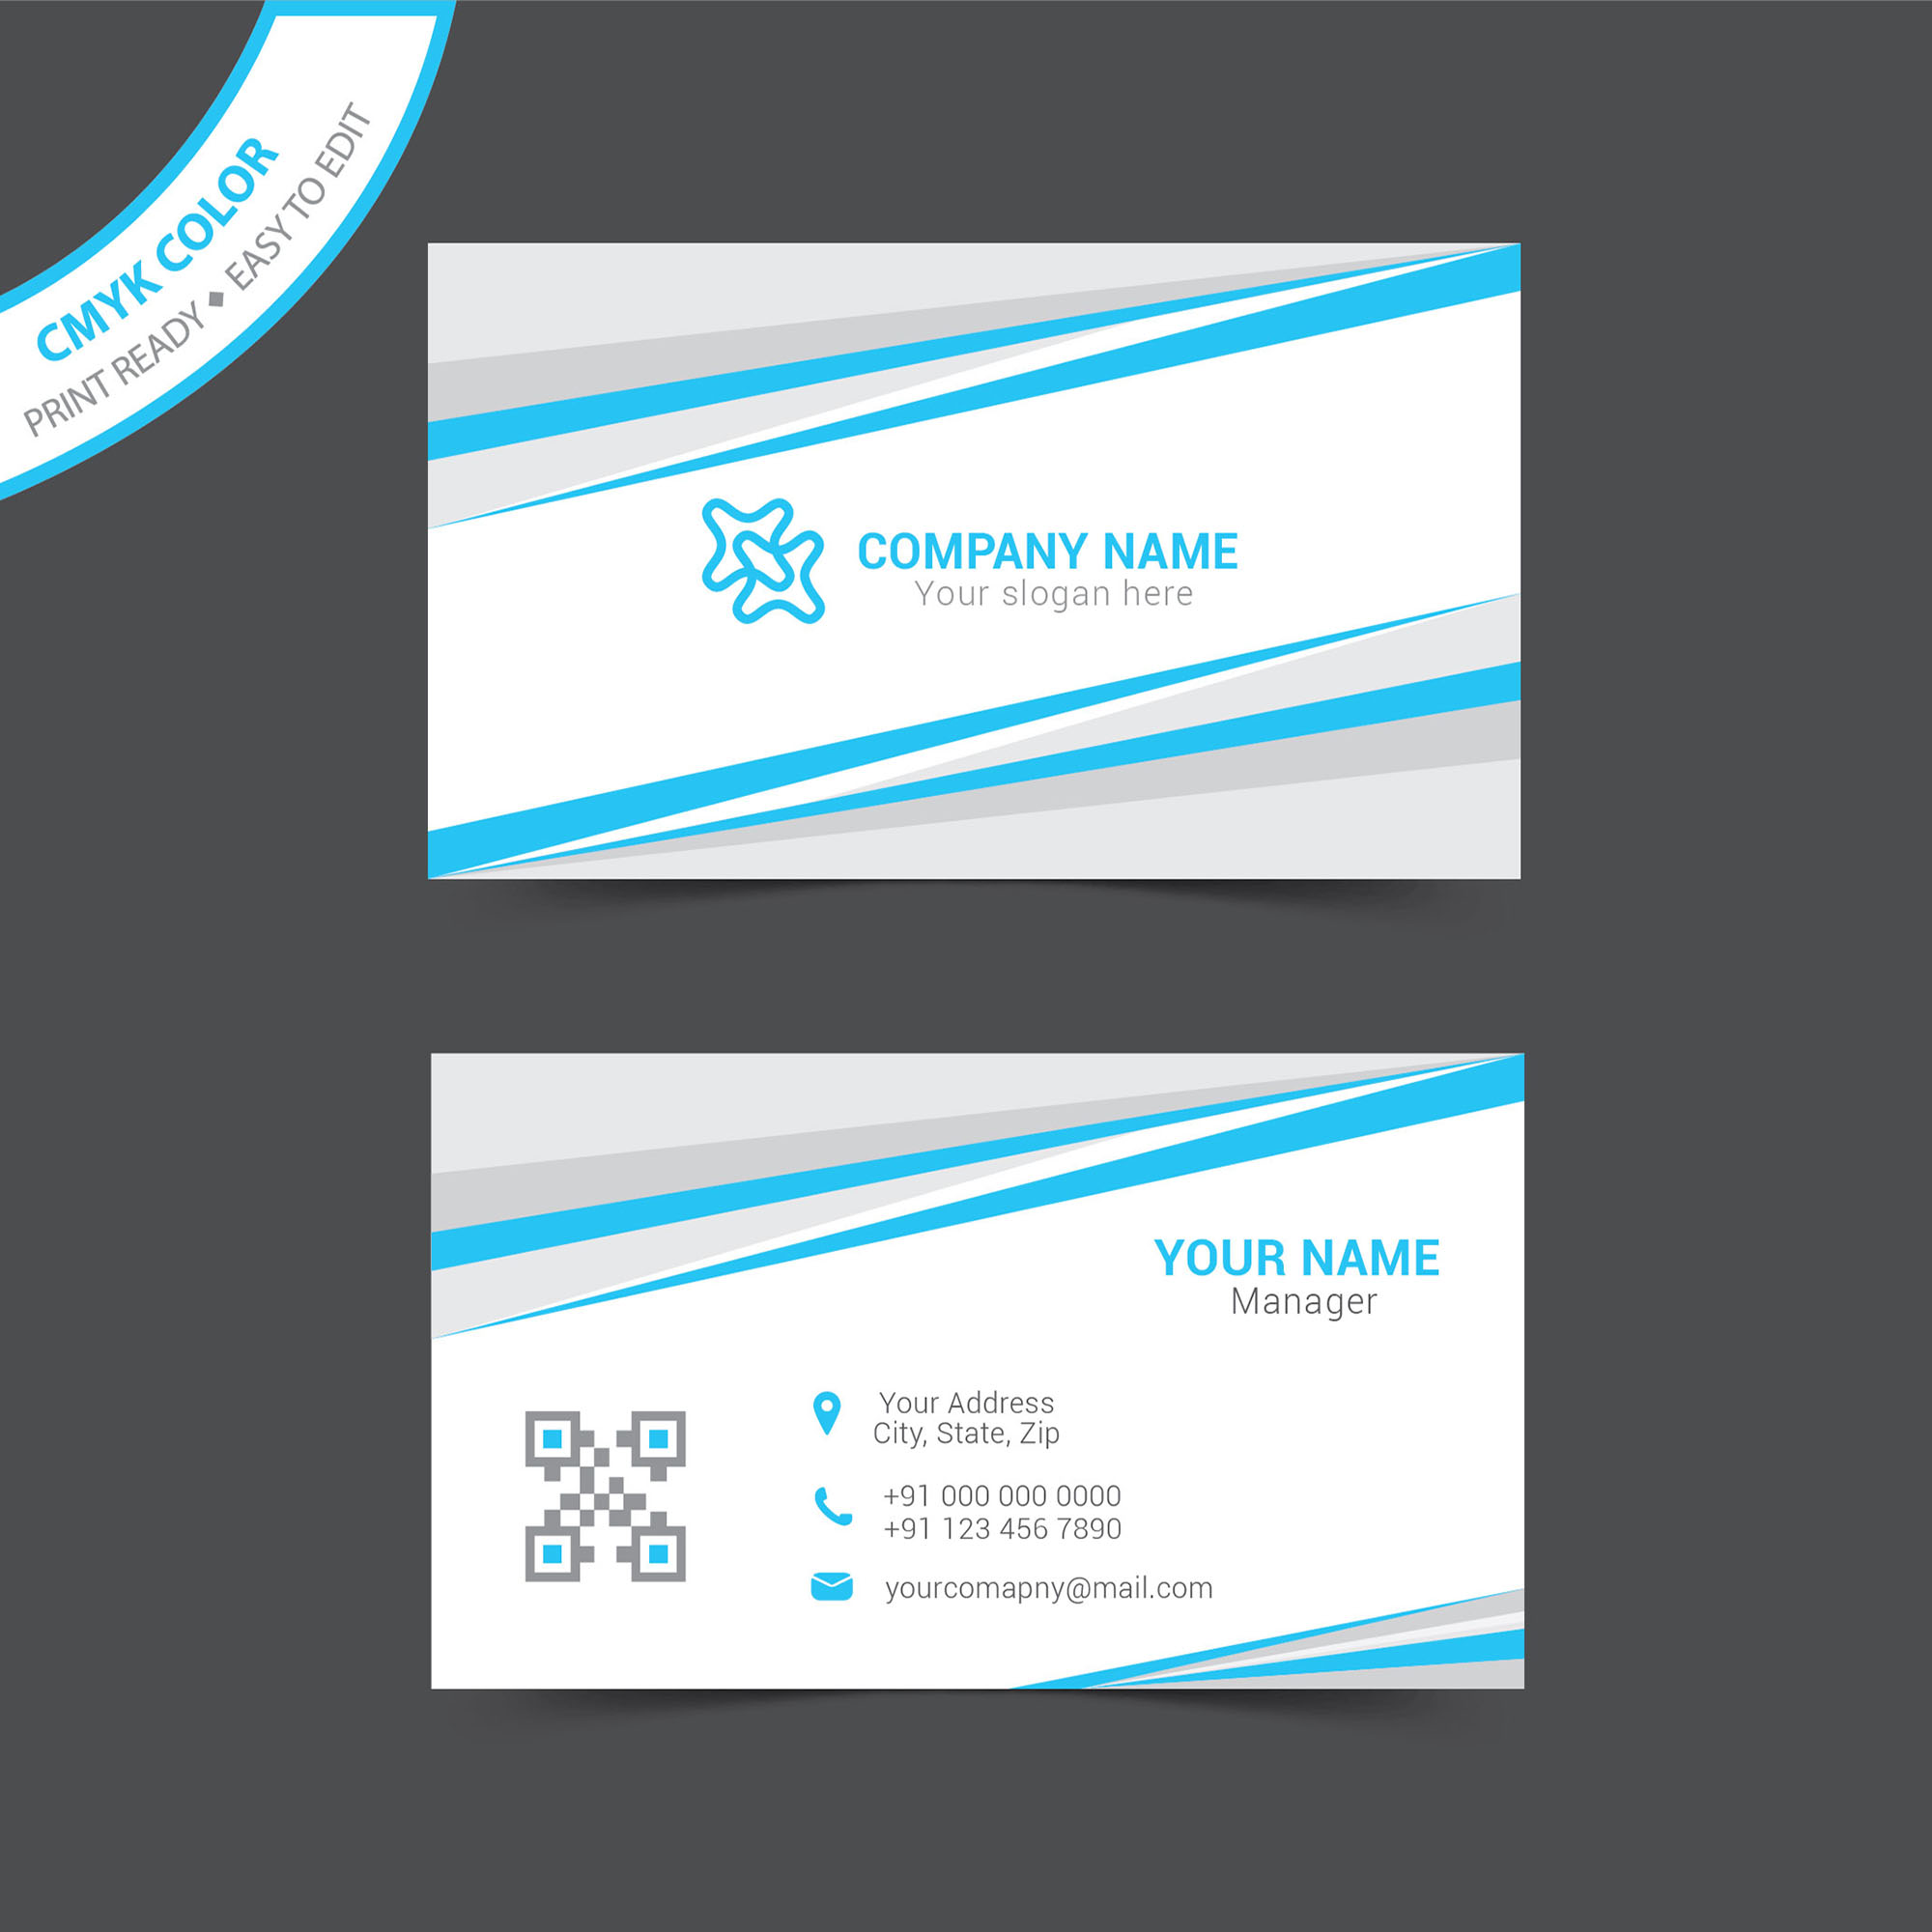 Simple business card template free download wisxi business card business cards business card design business card template design templates alramifo Image collections